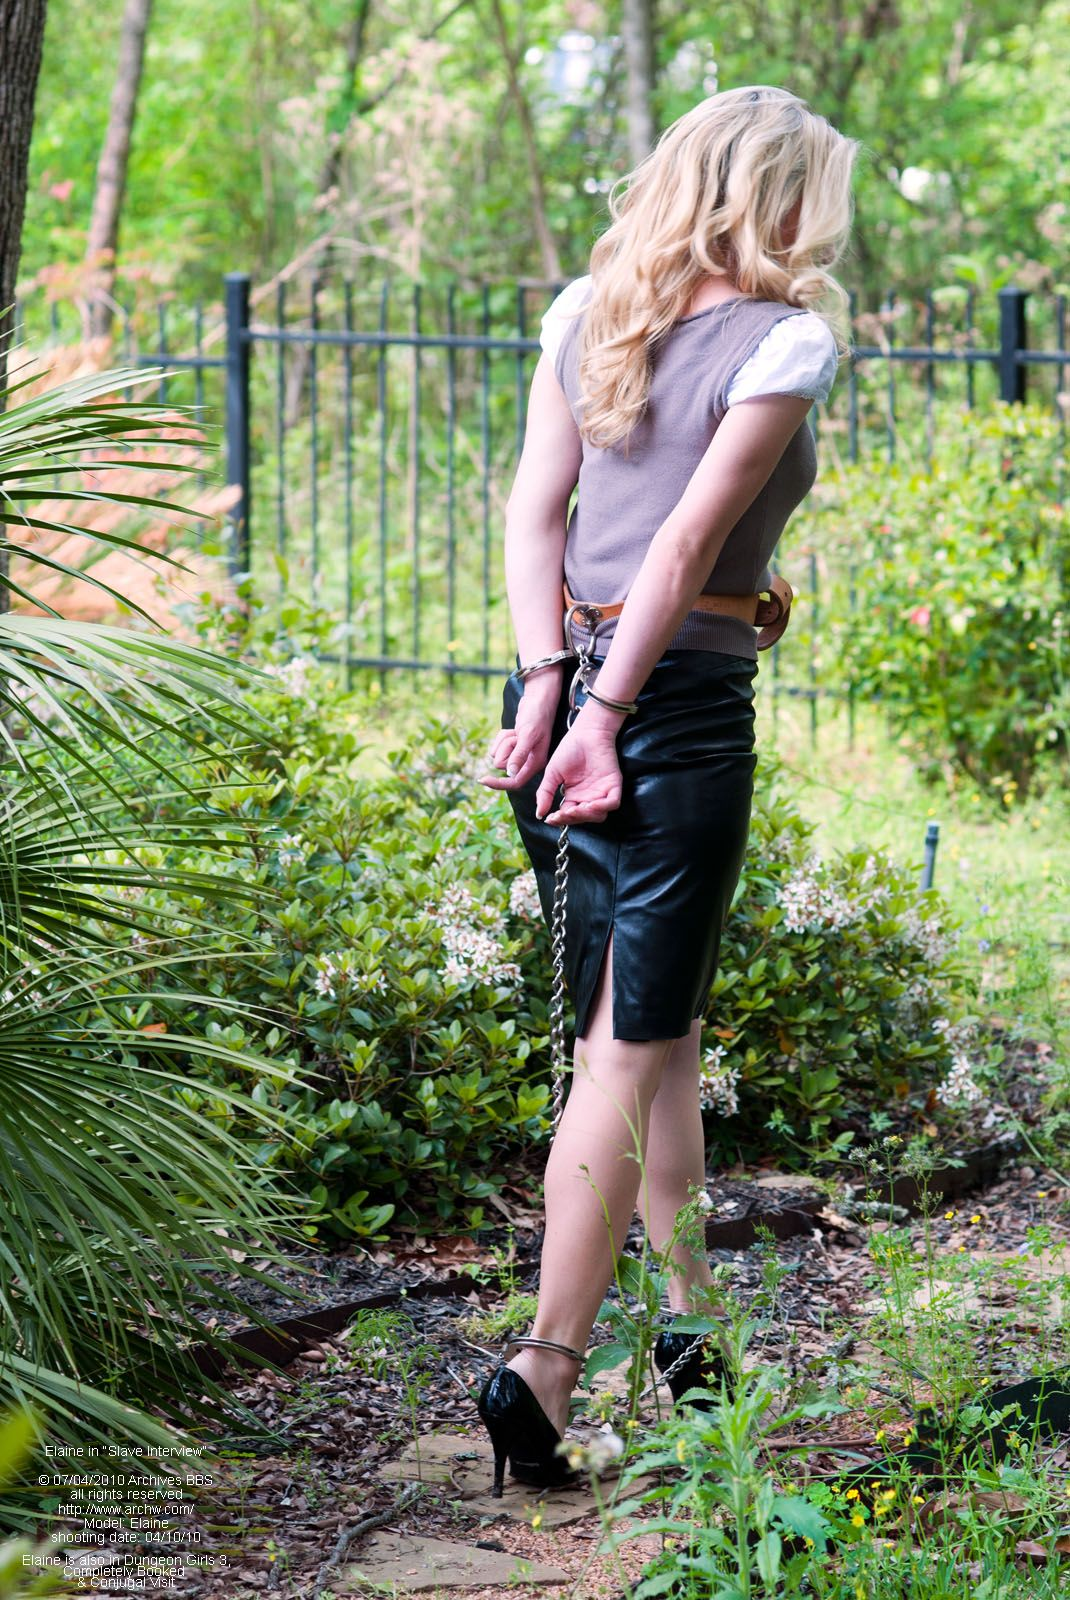 Pin By Felixdartmouth On Felix Dartmouth Images - Archwcom  Leather Skirt, Wide Leather Belt, Women-9657